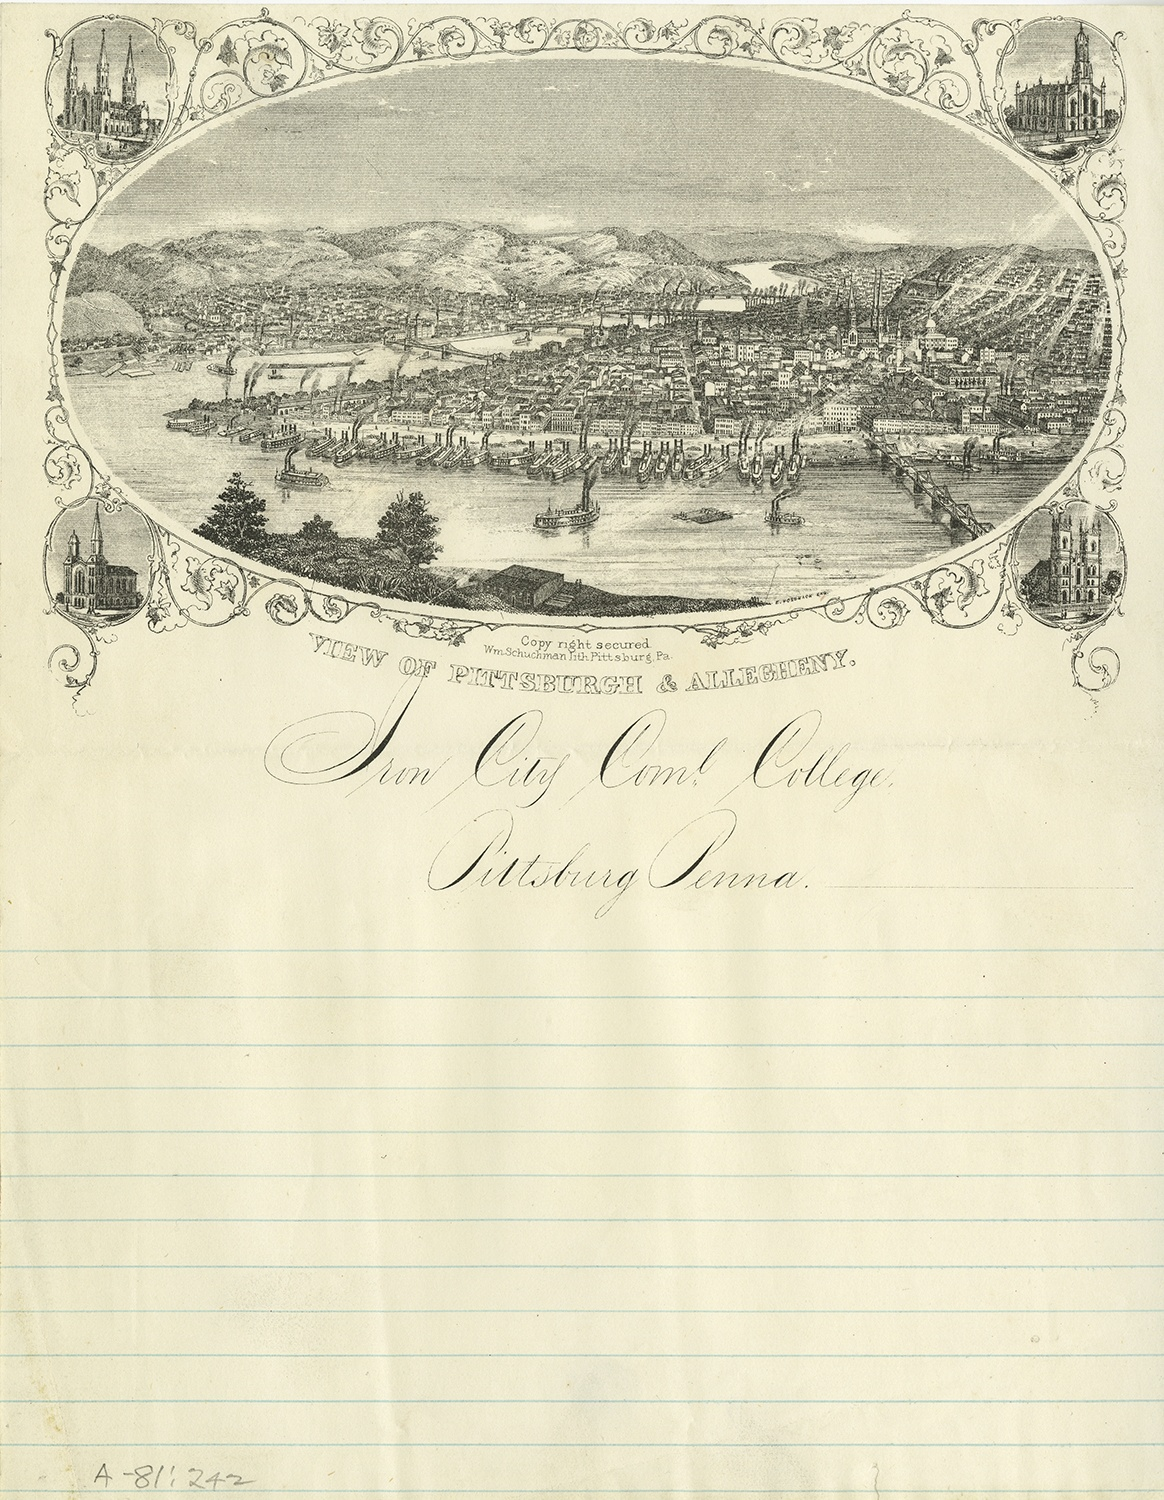 Letterhead for Iron City Commercial College, c. 1850s.